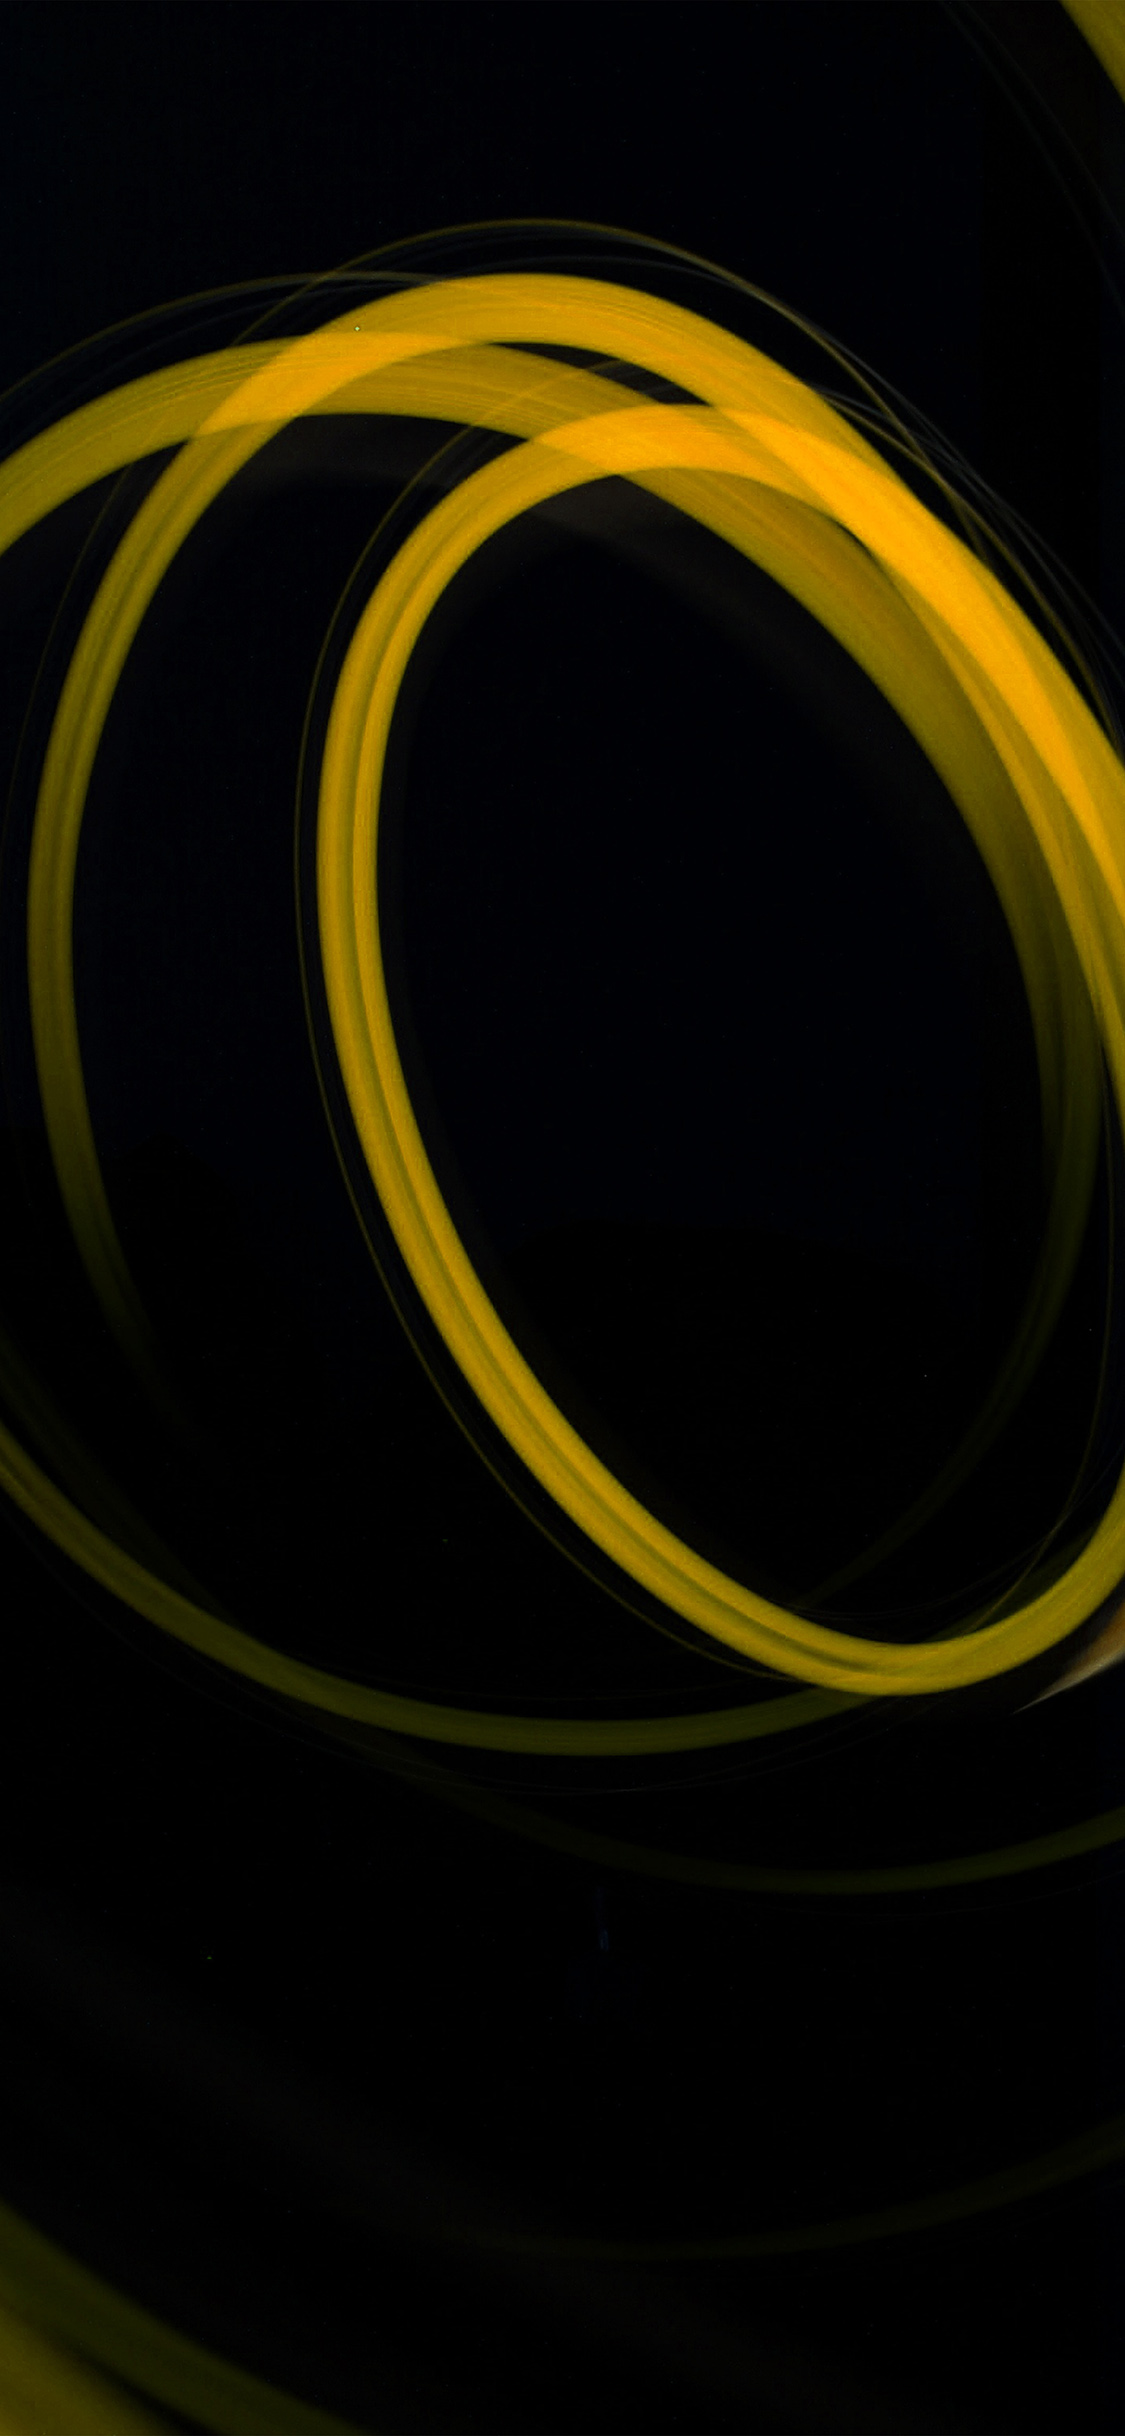 iPhonexpapers.com-Apple-iPhone-wallpaper-vo48-circle-light-dark-yellow-pattern